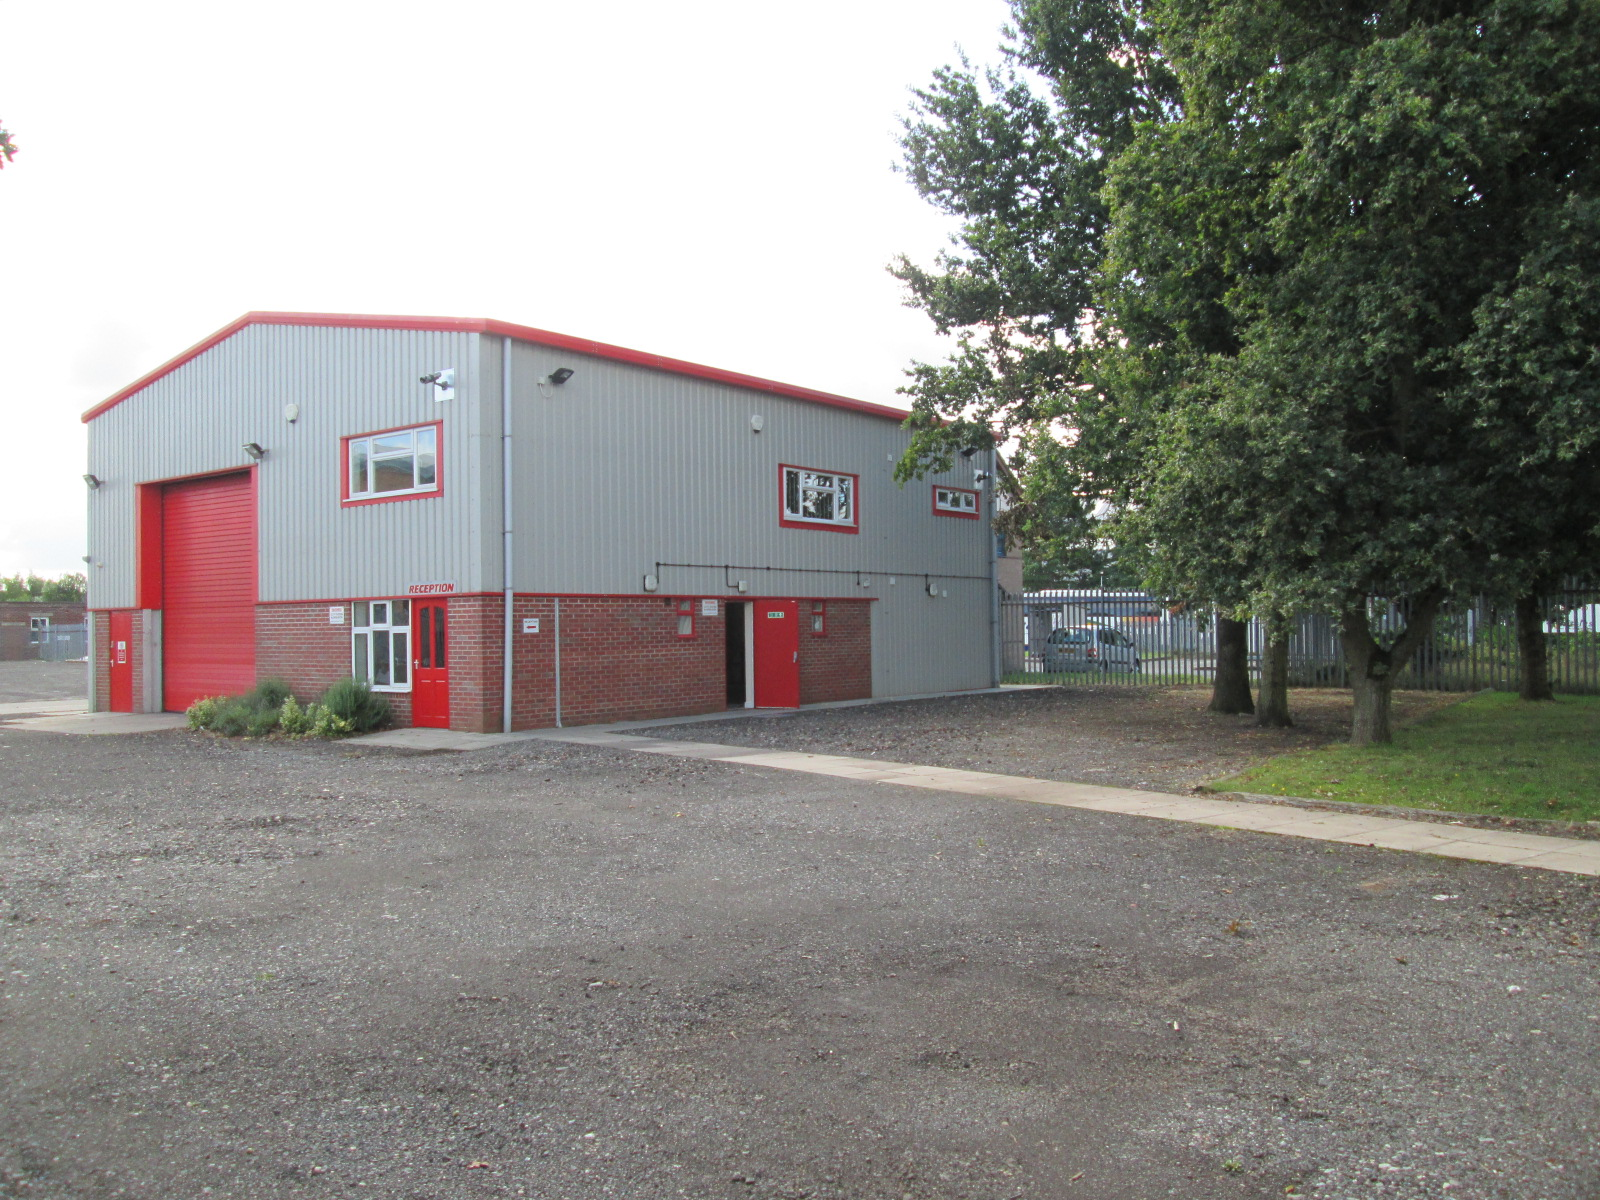 6a - Foley Drive, Foley Business Park, Stourport Road, Kidderminster, DY11 7PS